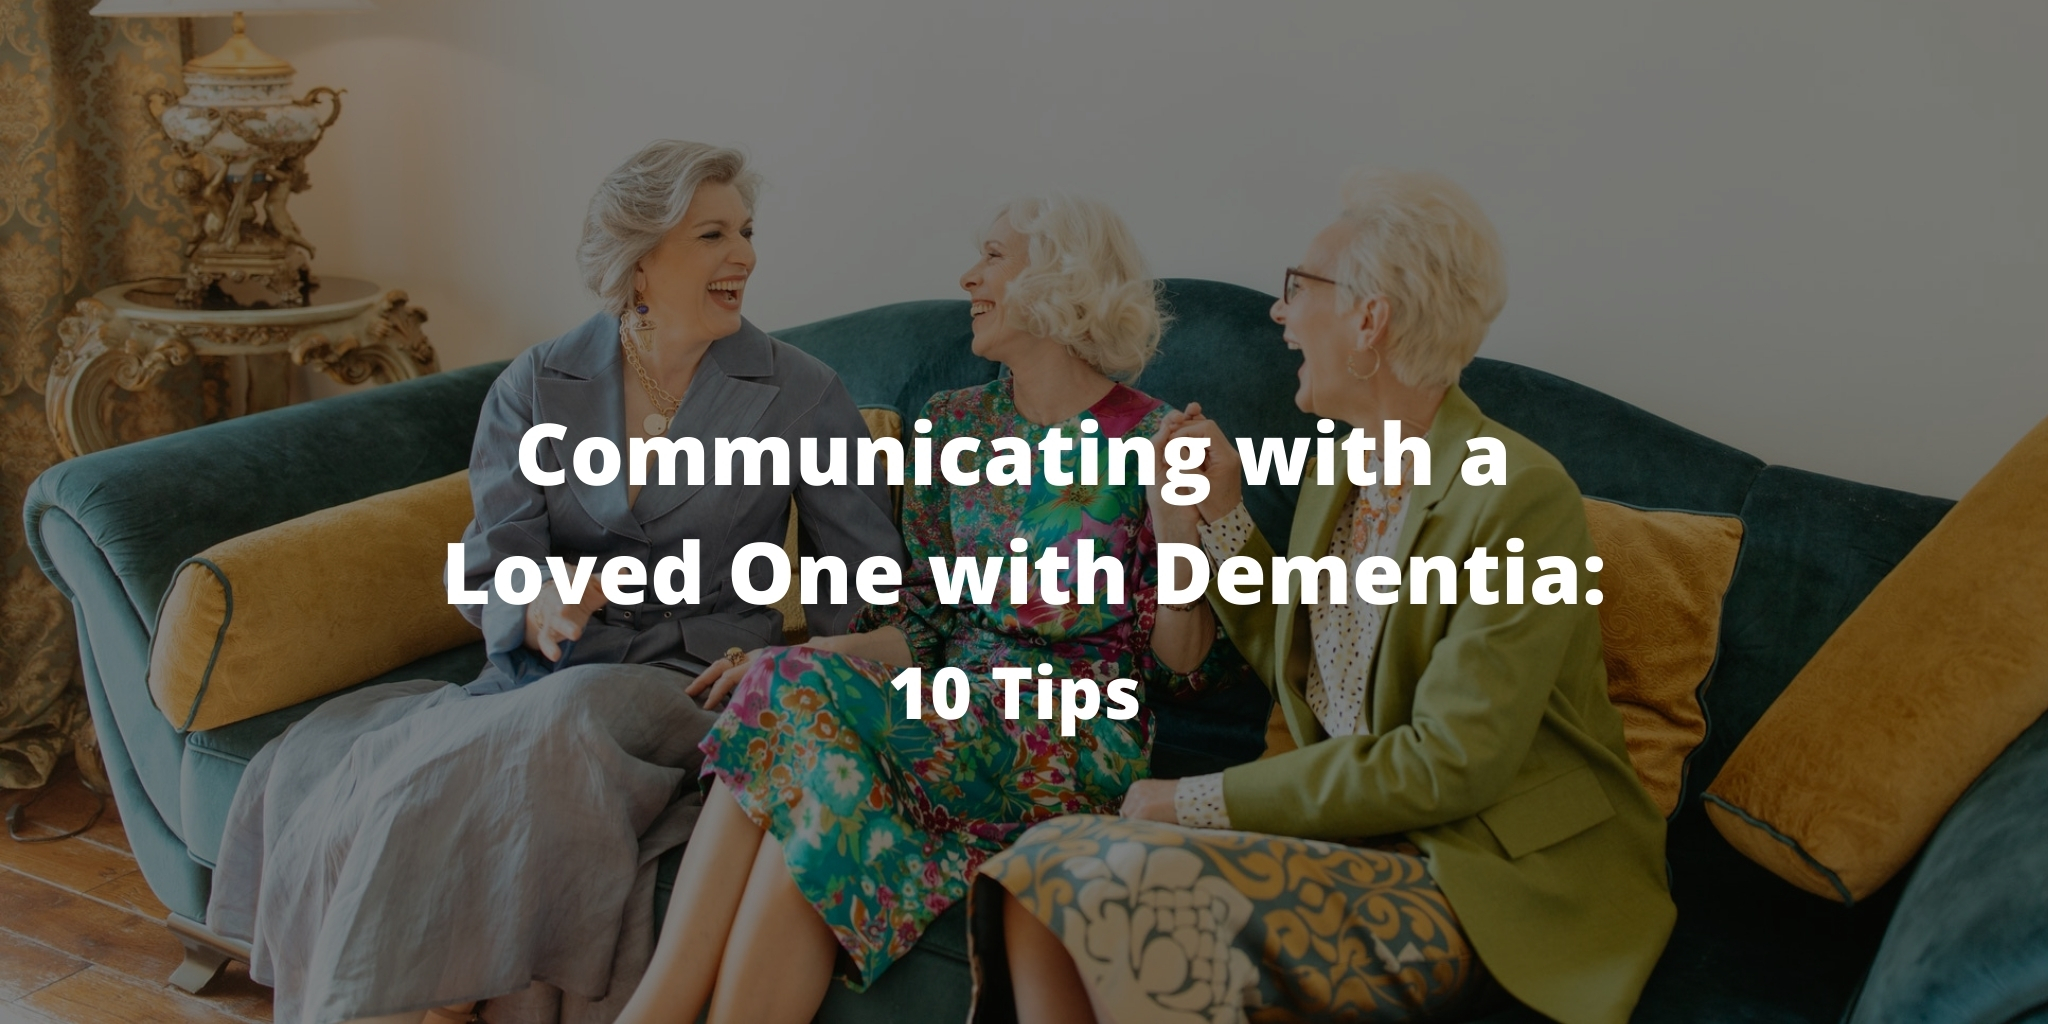 Communicating with a Loved One with Dementia: 10 Tips